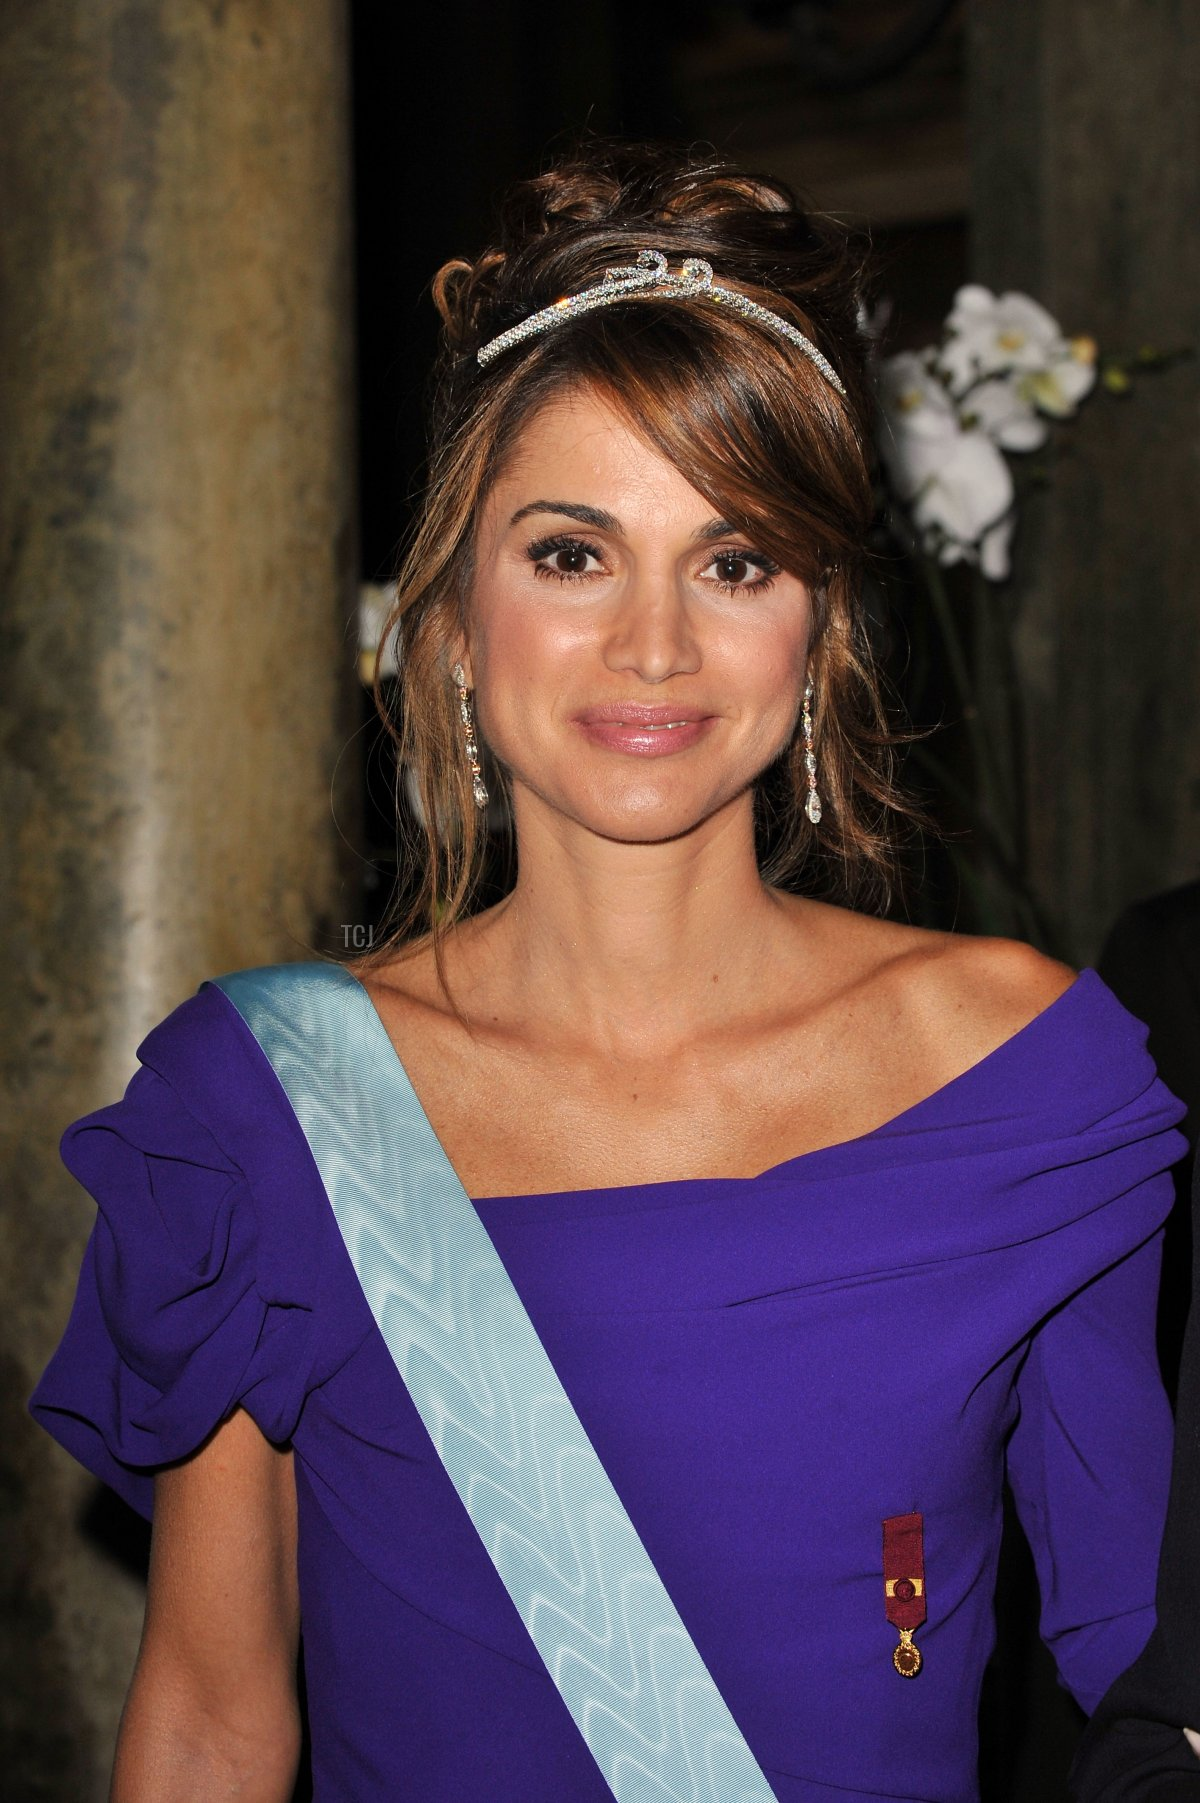 Queen Rania of Jordan attends the Wedding Banquet for Crown Princess Victoria of Sweden and her husband prince Daniel at the Royal Palace on June 19, 2010 in Stockholm, Sweden